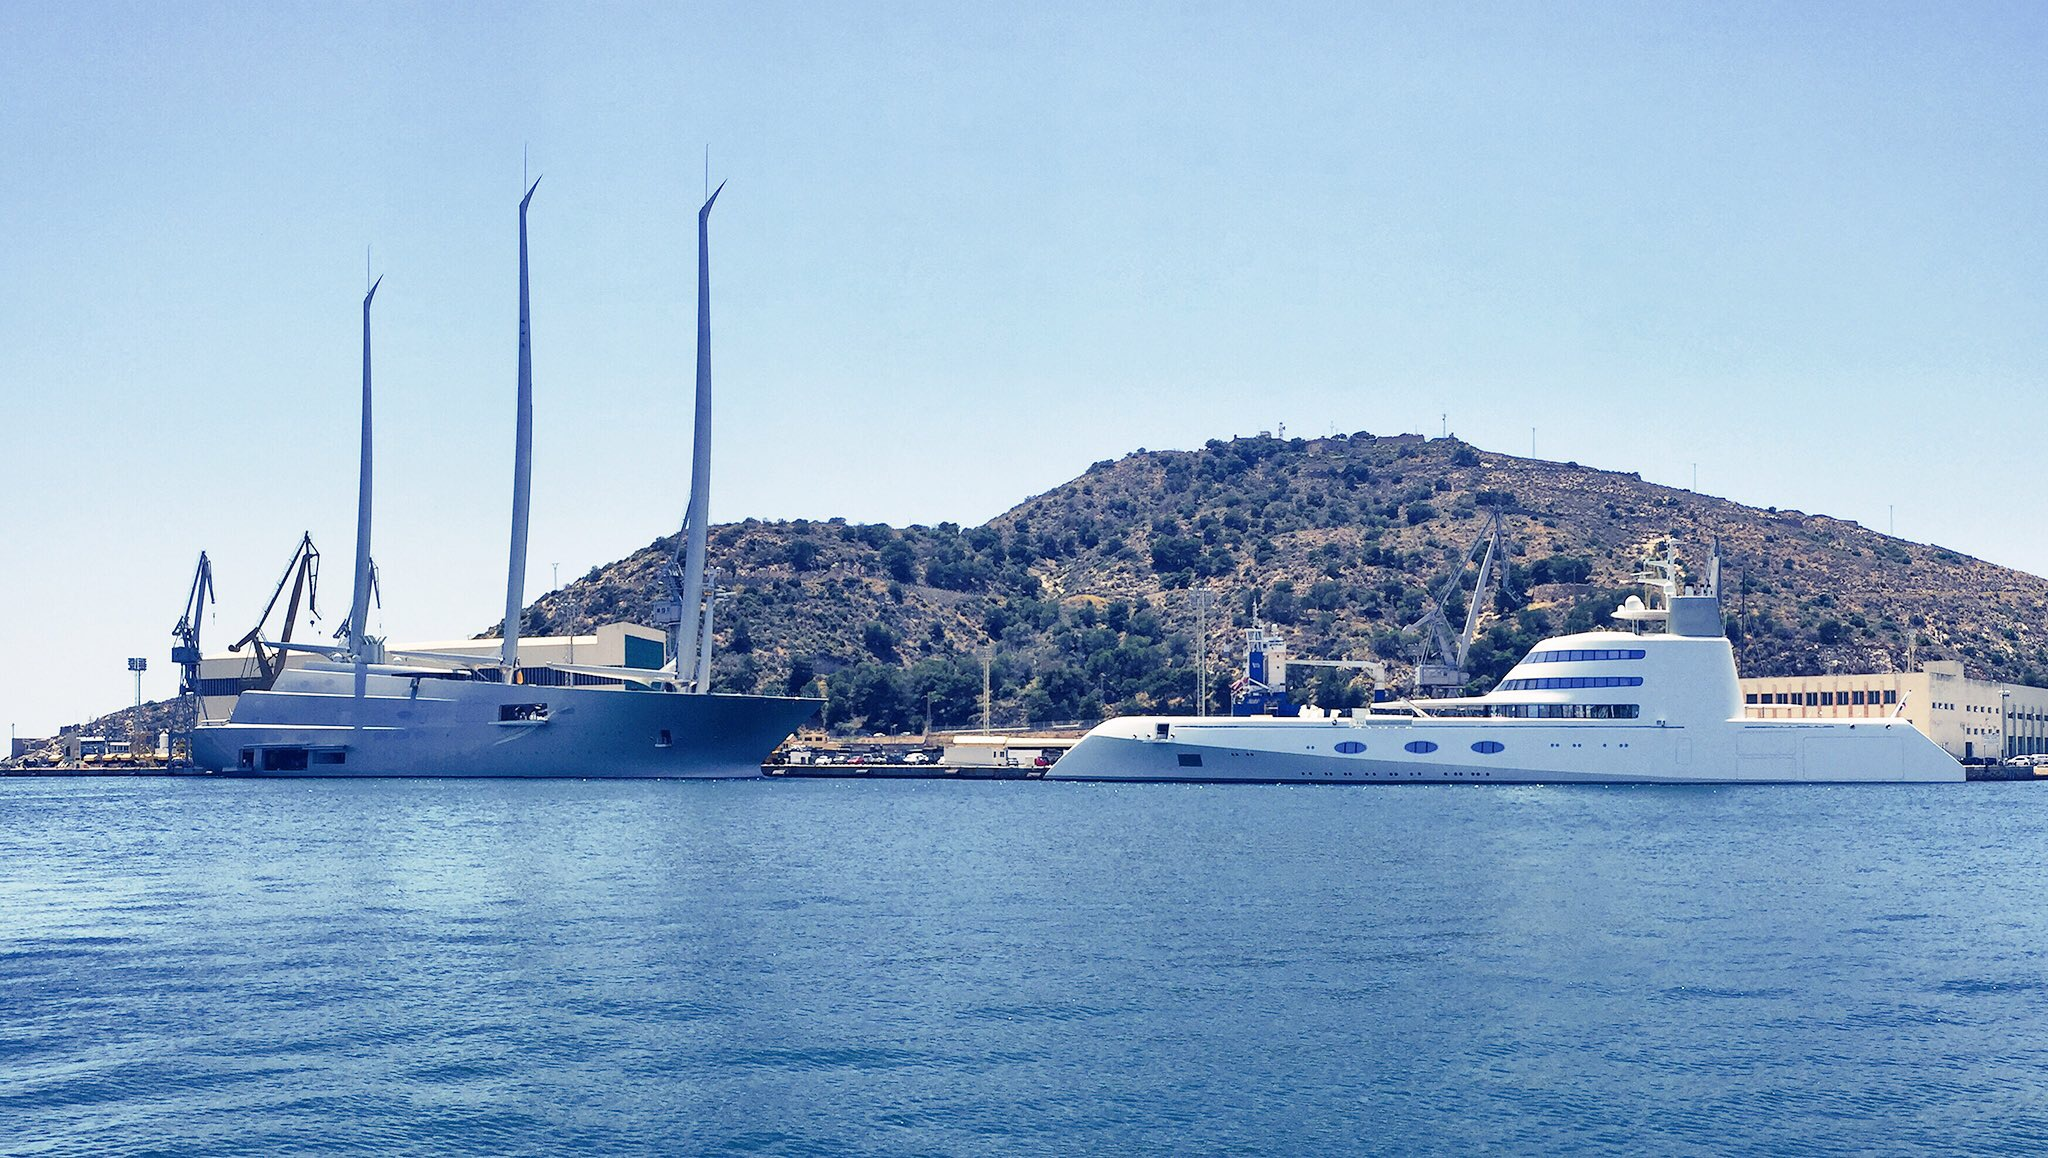 Both boats belong to a Russian billionaire... this is what £660m will get you at your local dockyard.